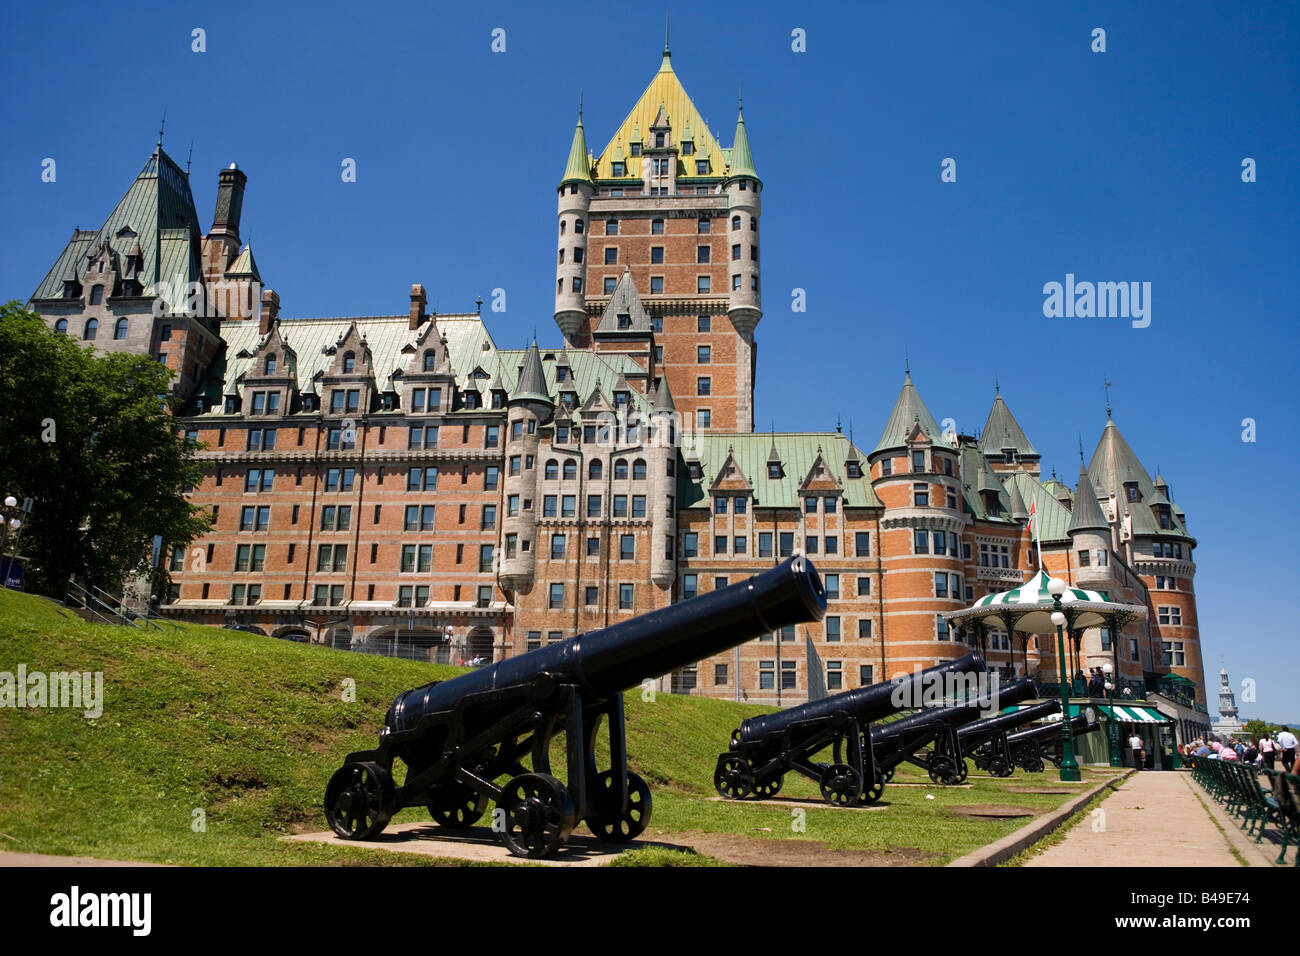 canons in front of le chateau frontenac castle and hotel. Black Bedroom Furniture Sets. Home Design Ideas